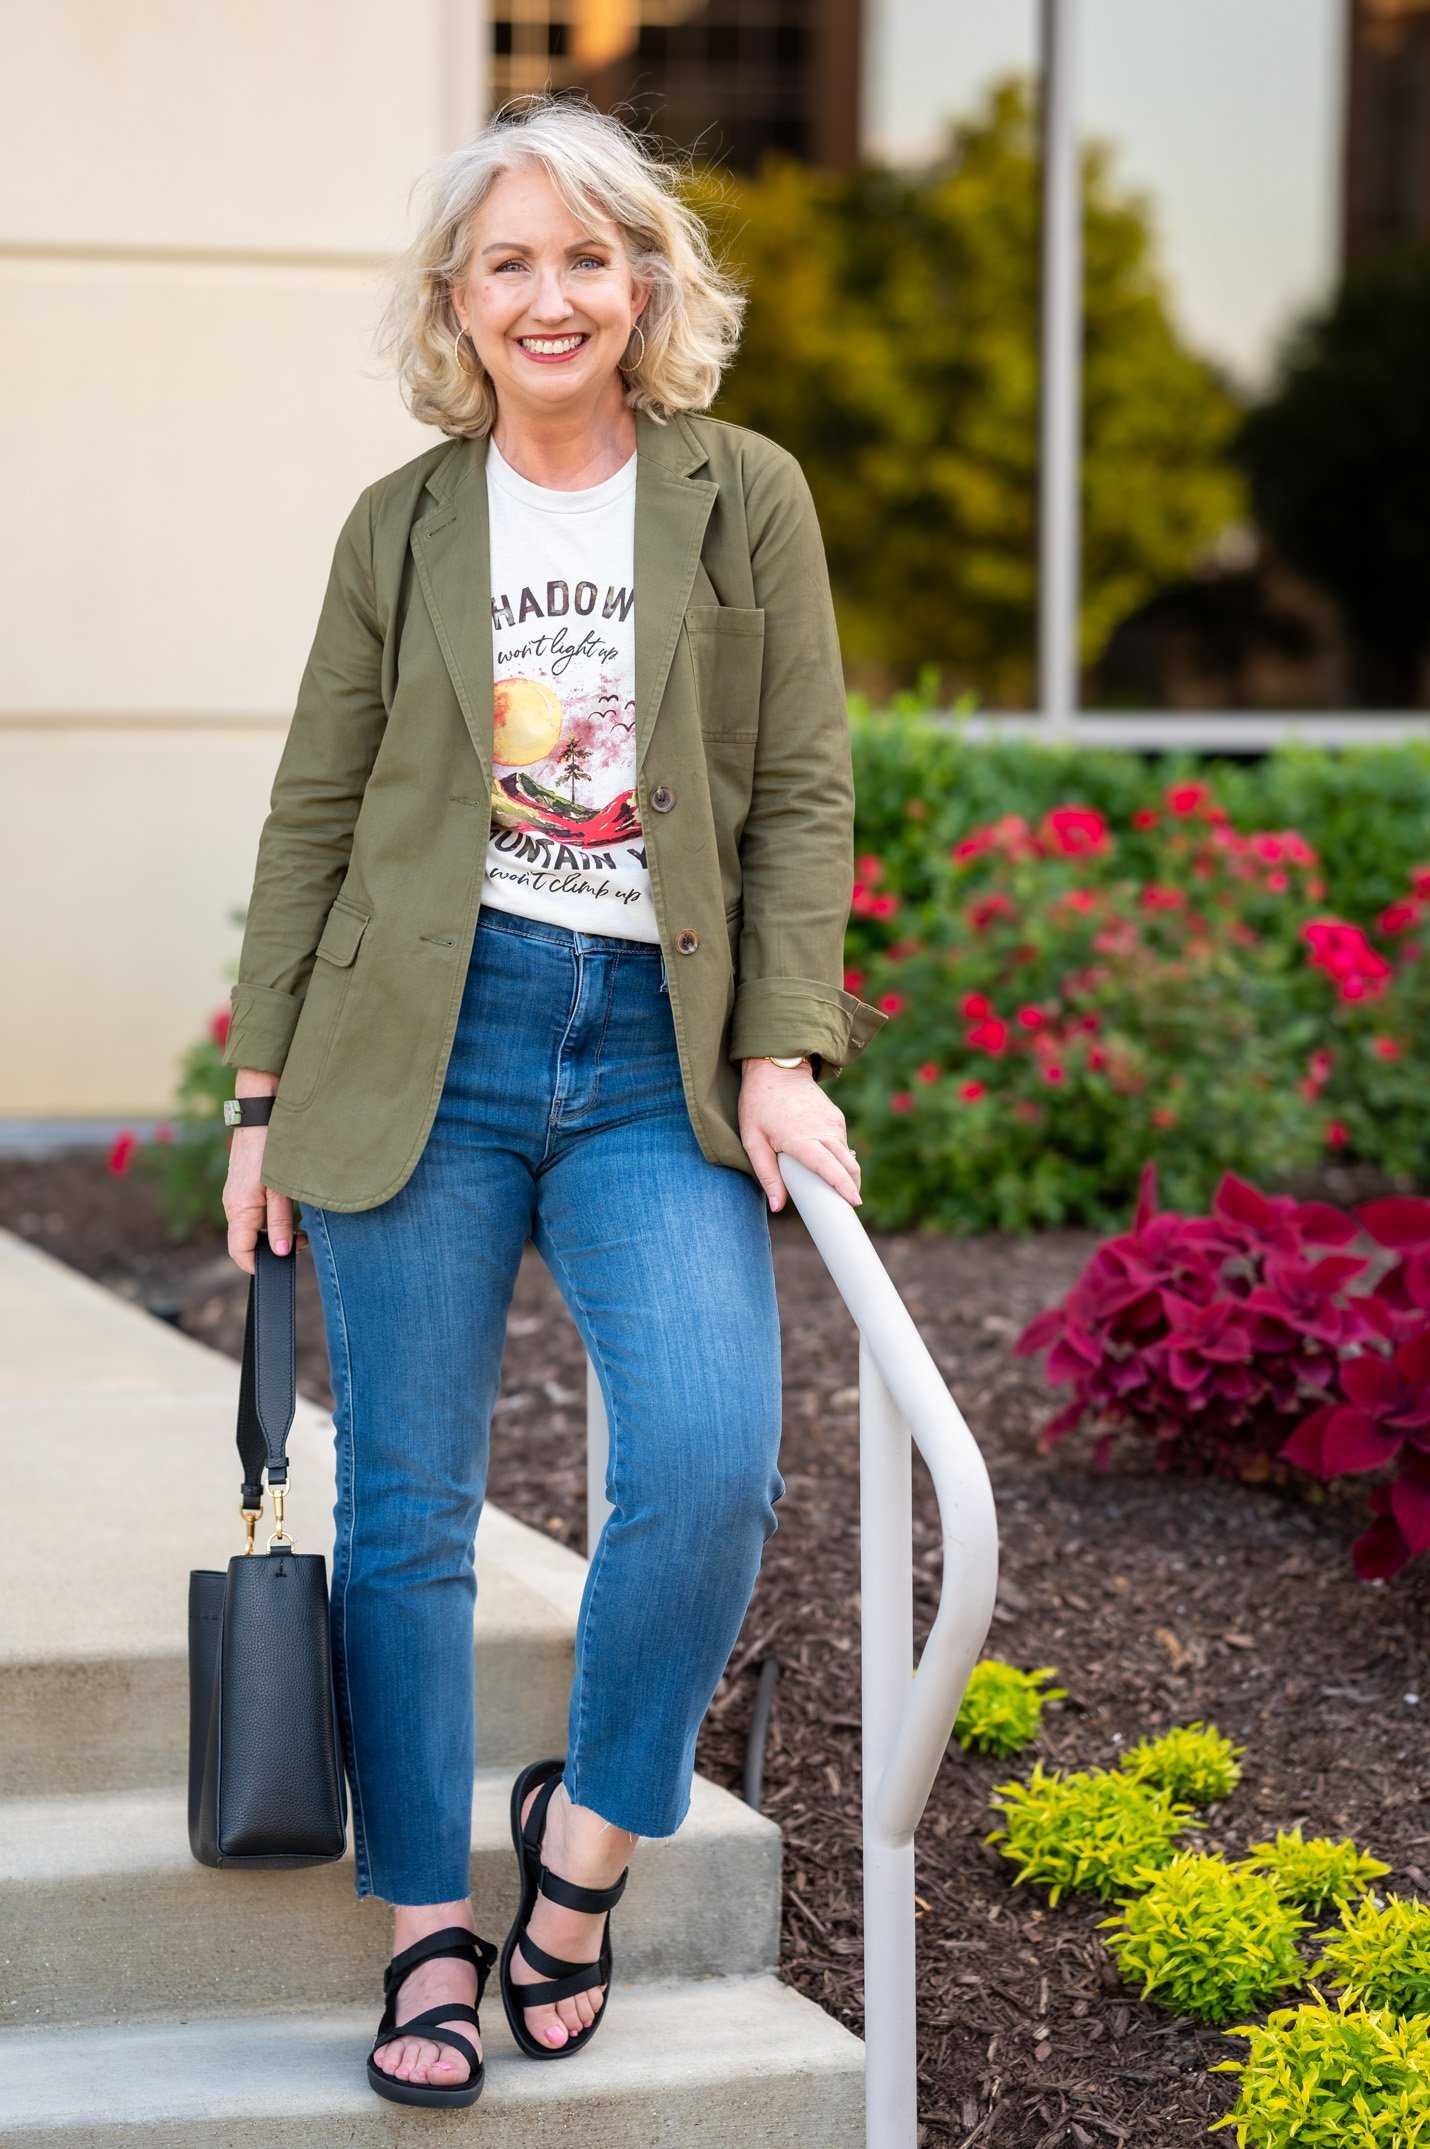 Graphic Tee and Jeans for Early Fall